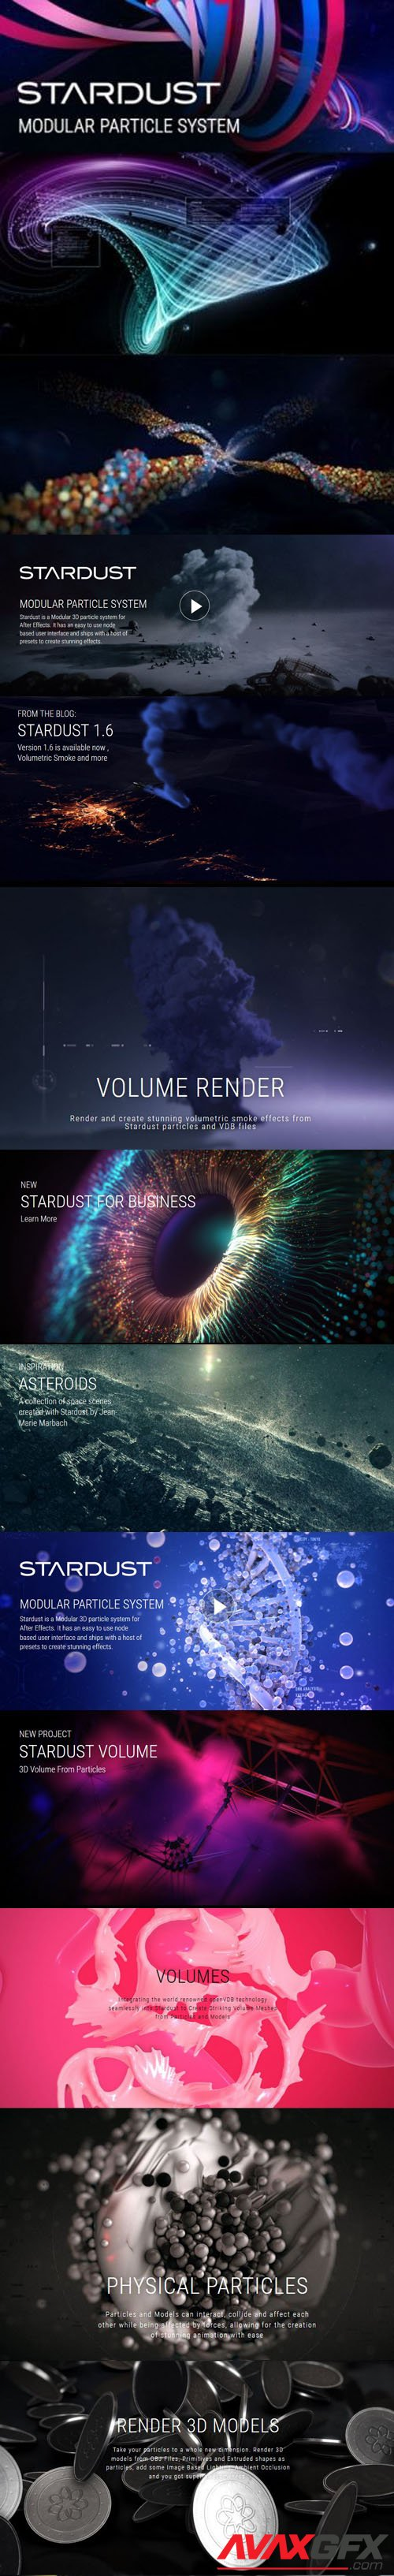 Superluminal Stardust 1.6.0 Plugin for Adobe After Effects